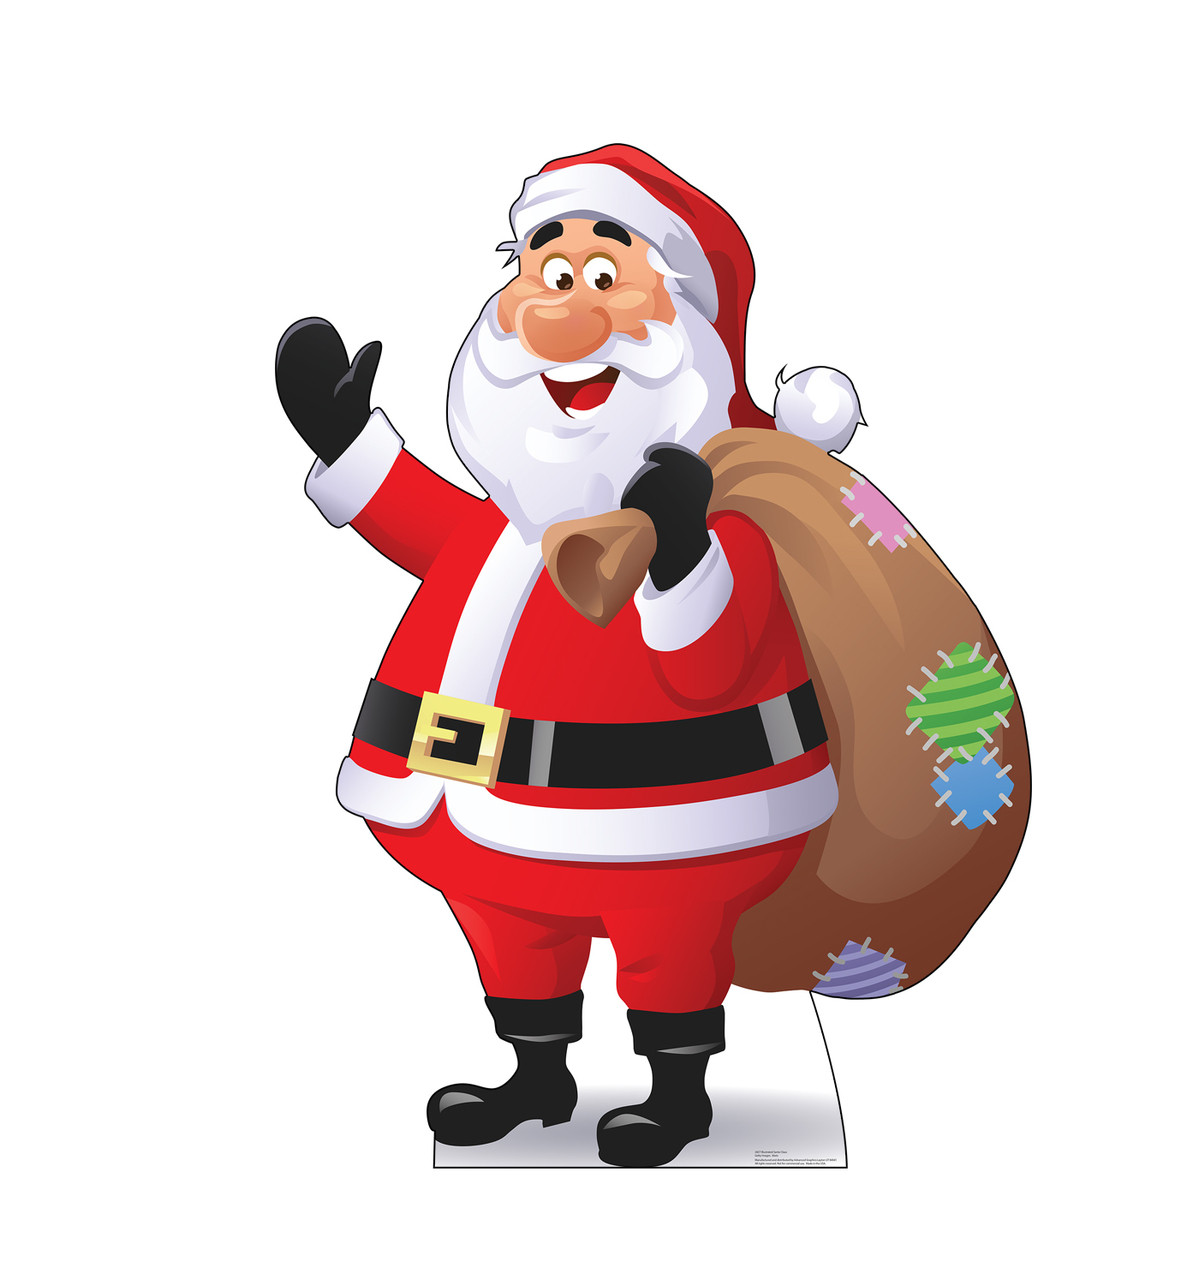 Life-size cardboard standee of Illustrated Santa Claus.